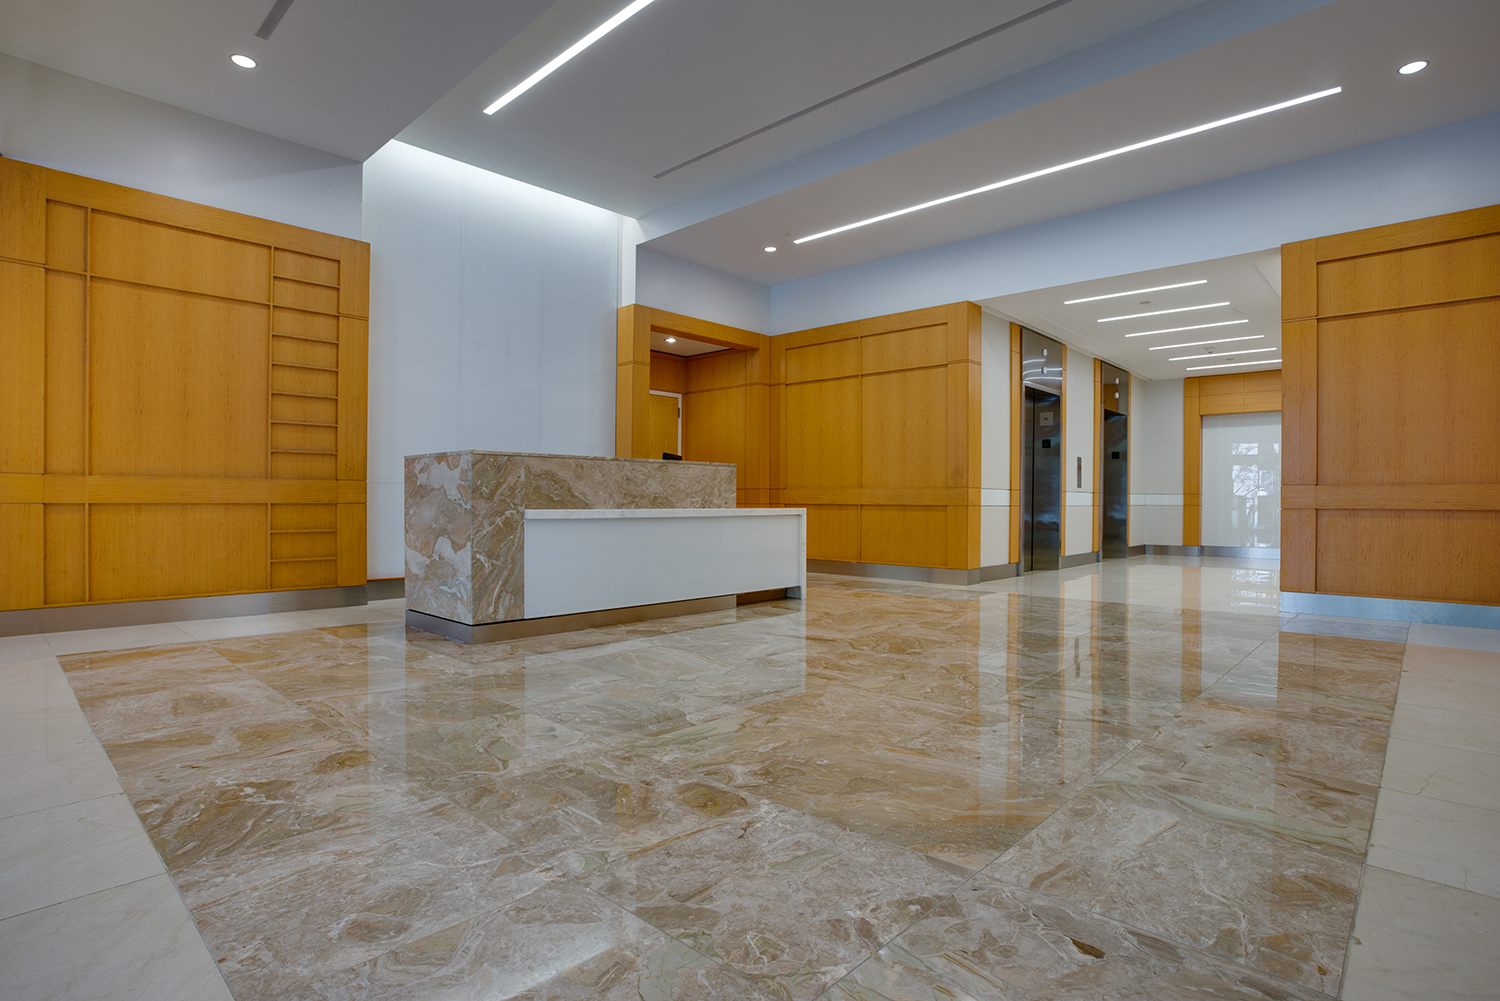 Bethesda Crossing Breccia Oniciata marble flooring and desk